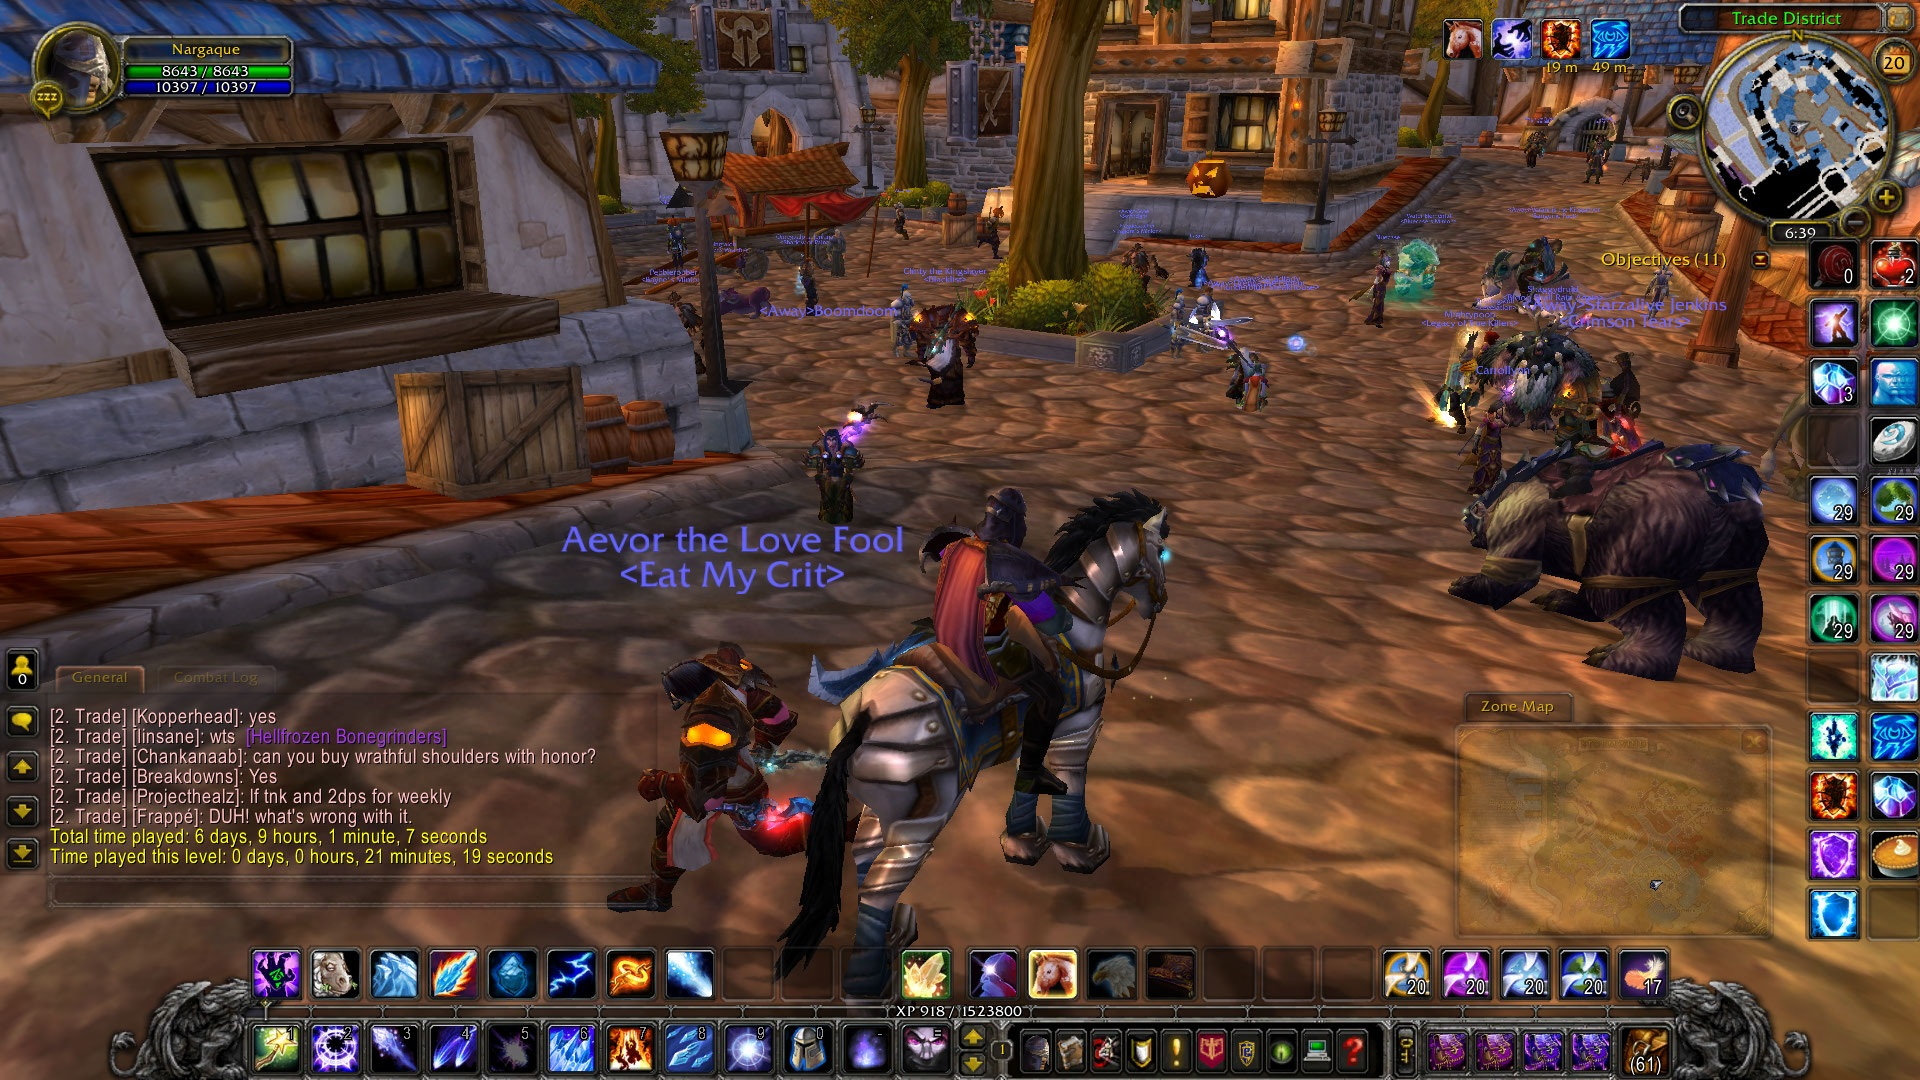 Is The MMO Dying, Or Poised For A Grand Return?